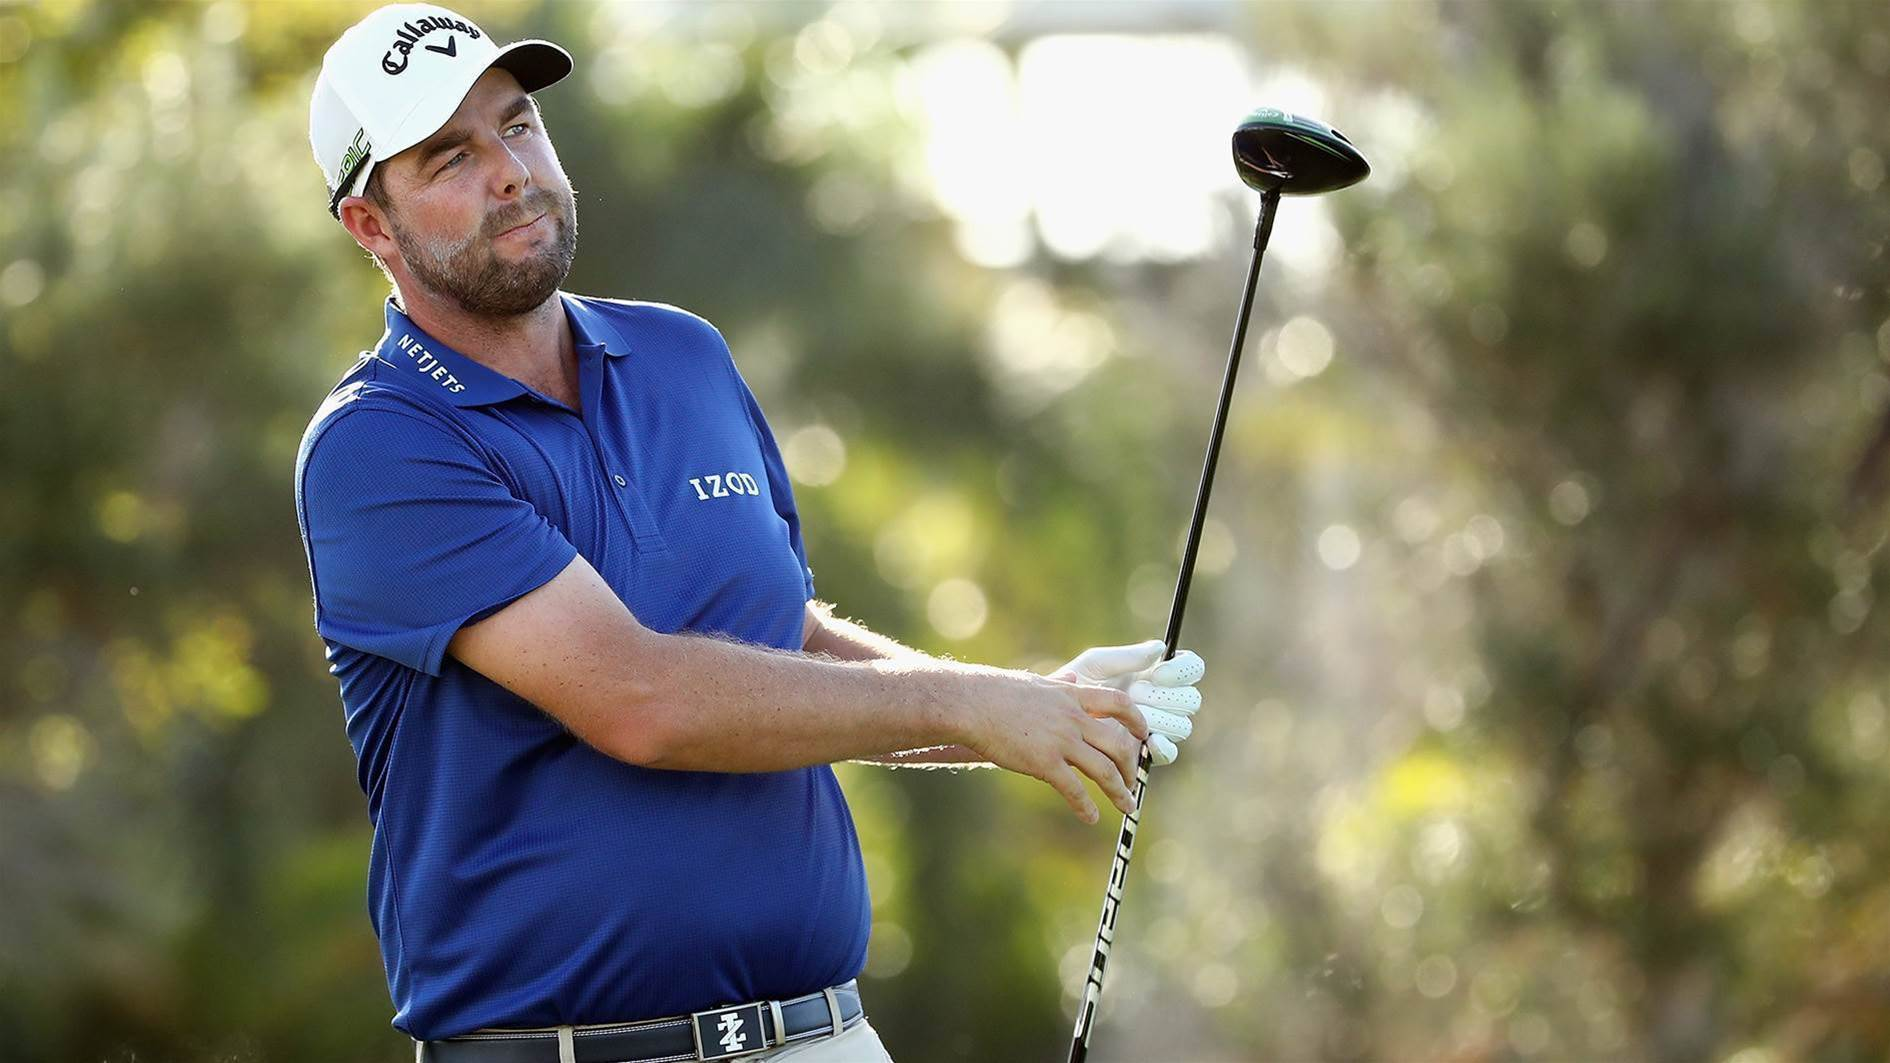 Leishman riding hot form into Sony Open